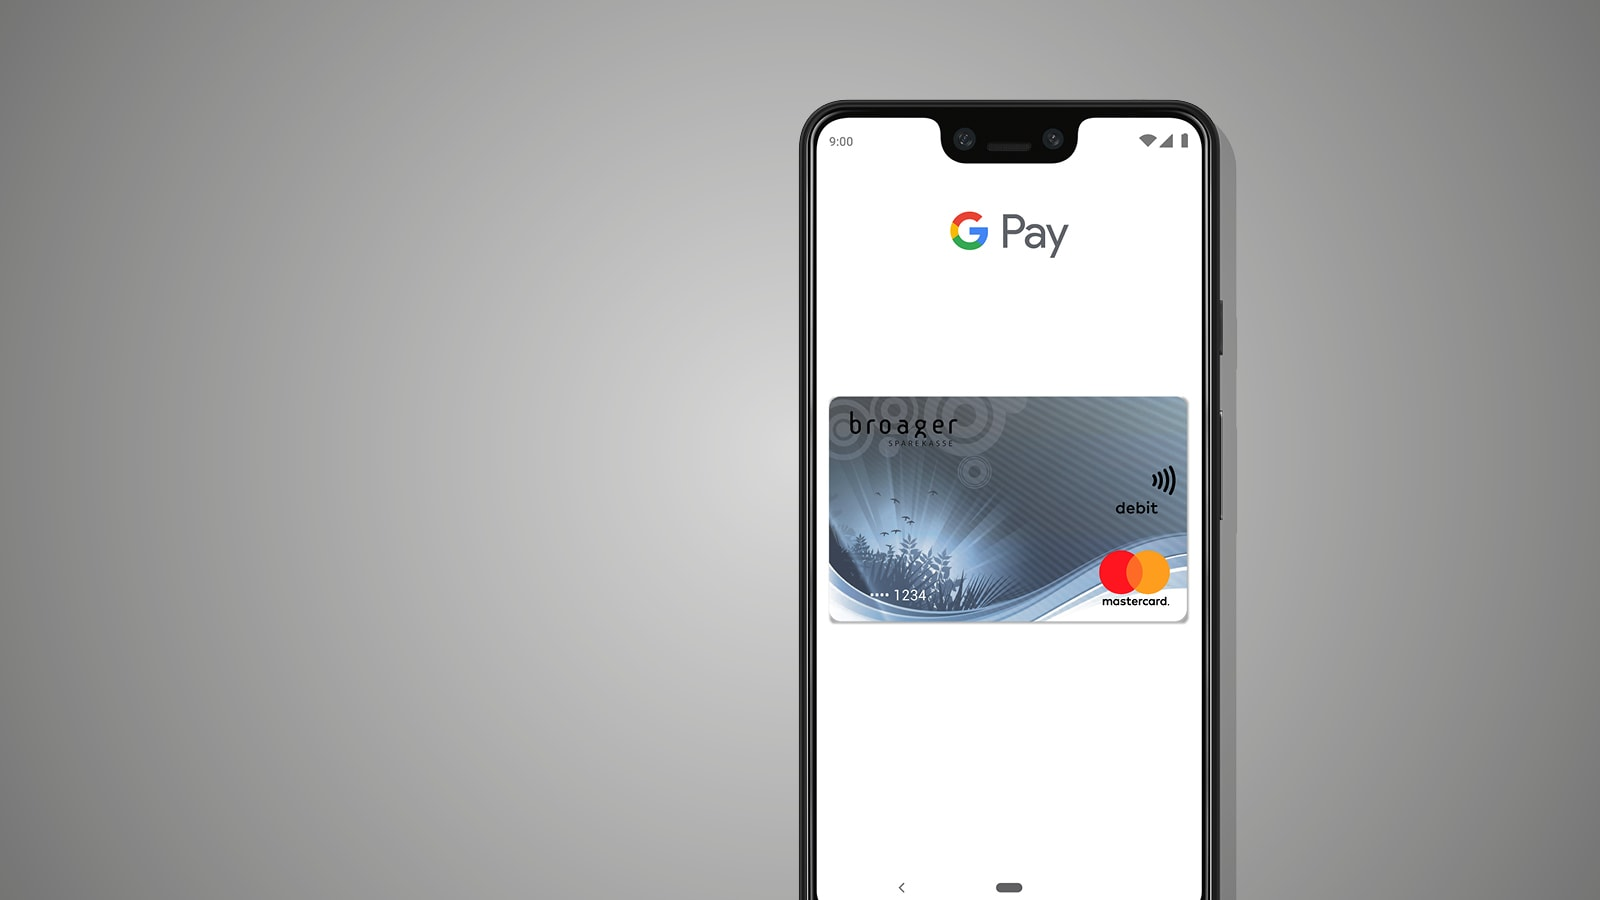 Google Pay i Broager Sparekasse